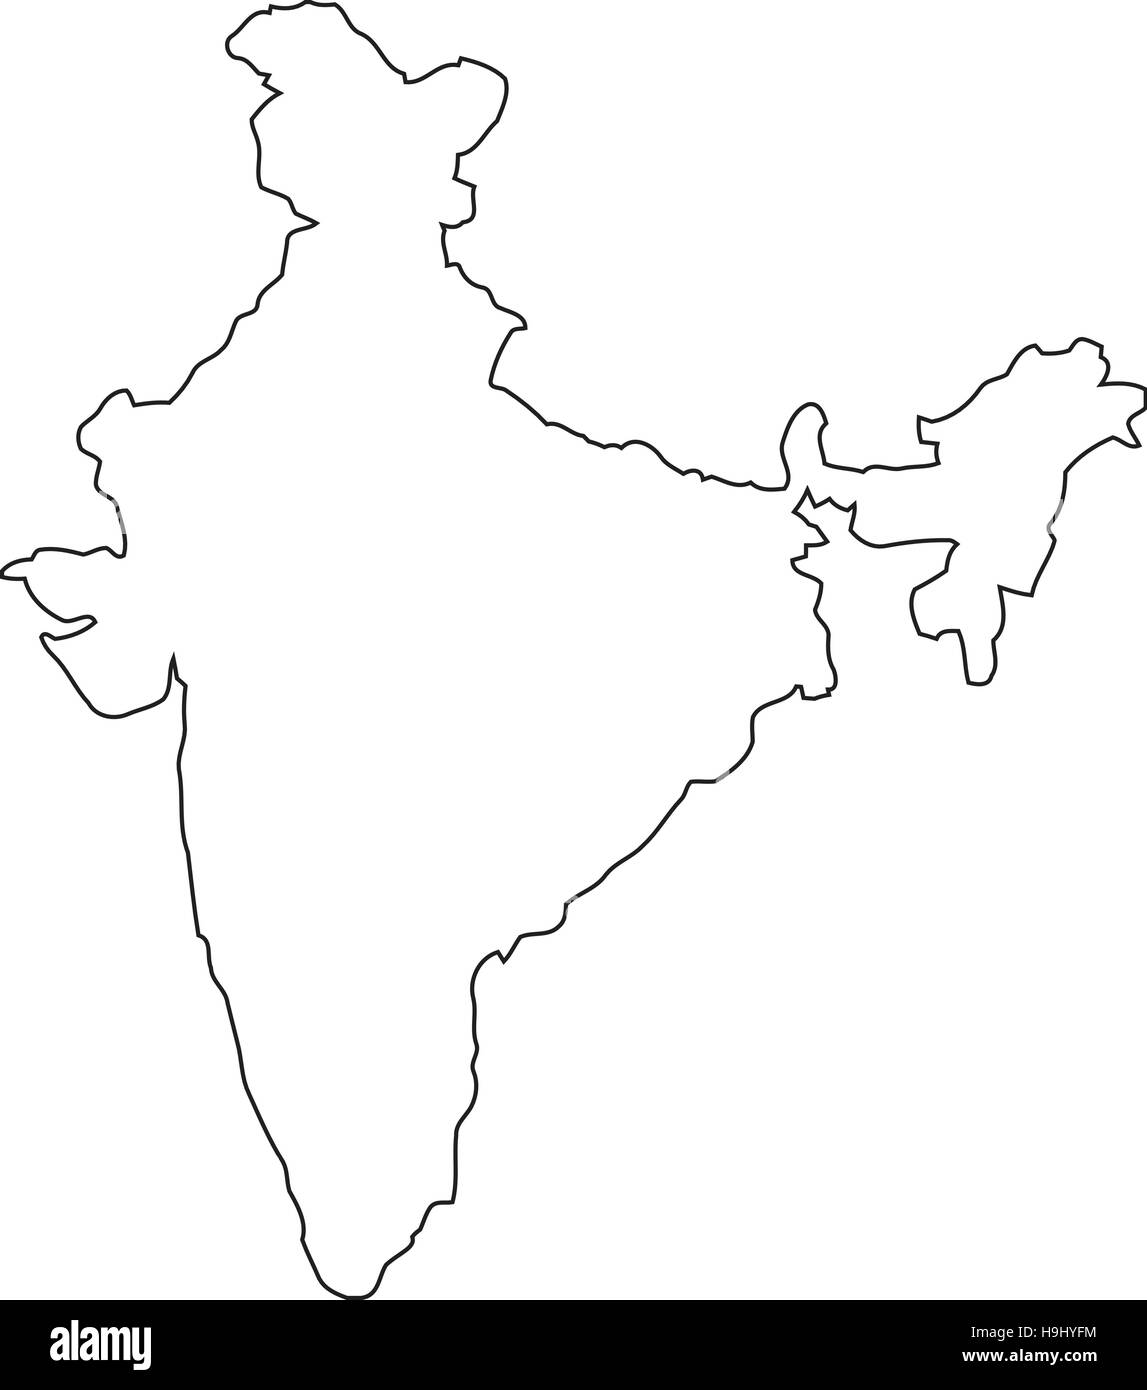 India Map Black And White Stock Photos Images Alamy